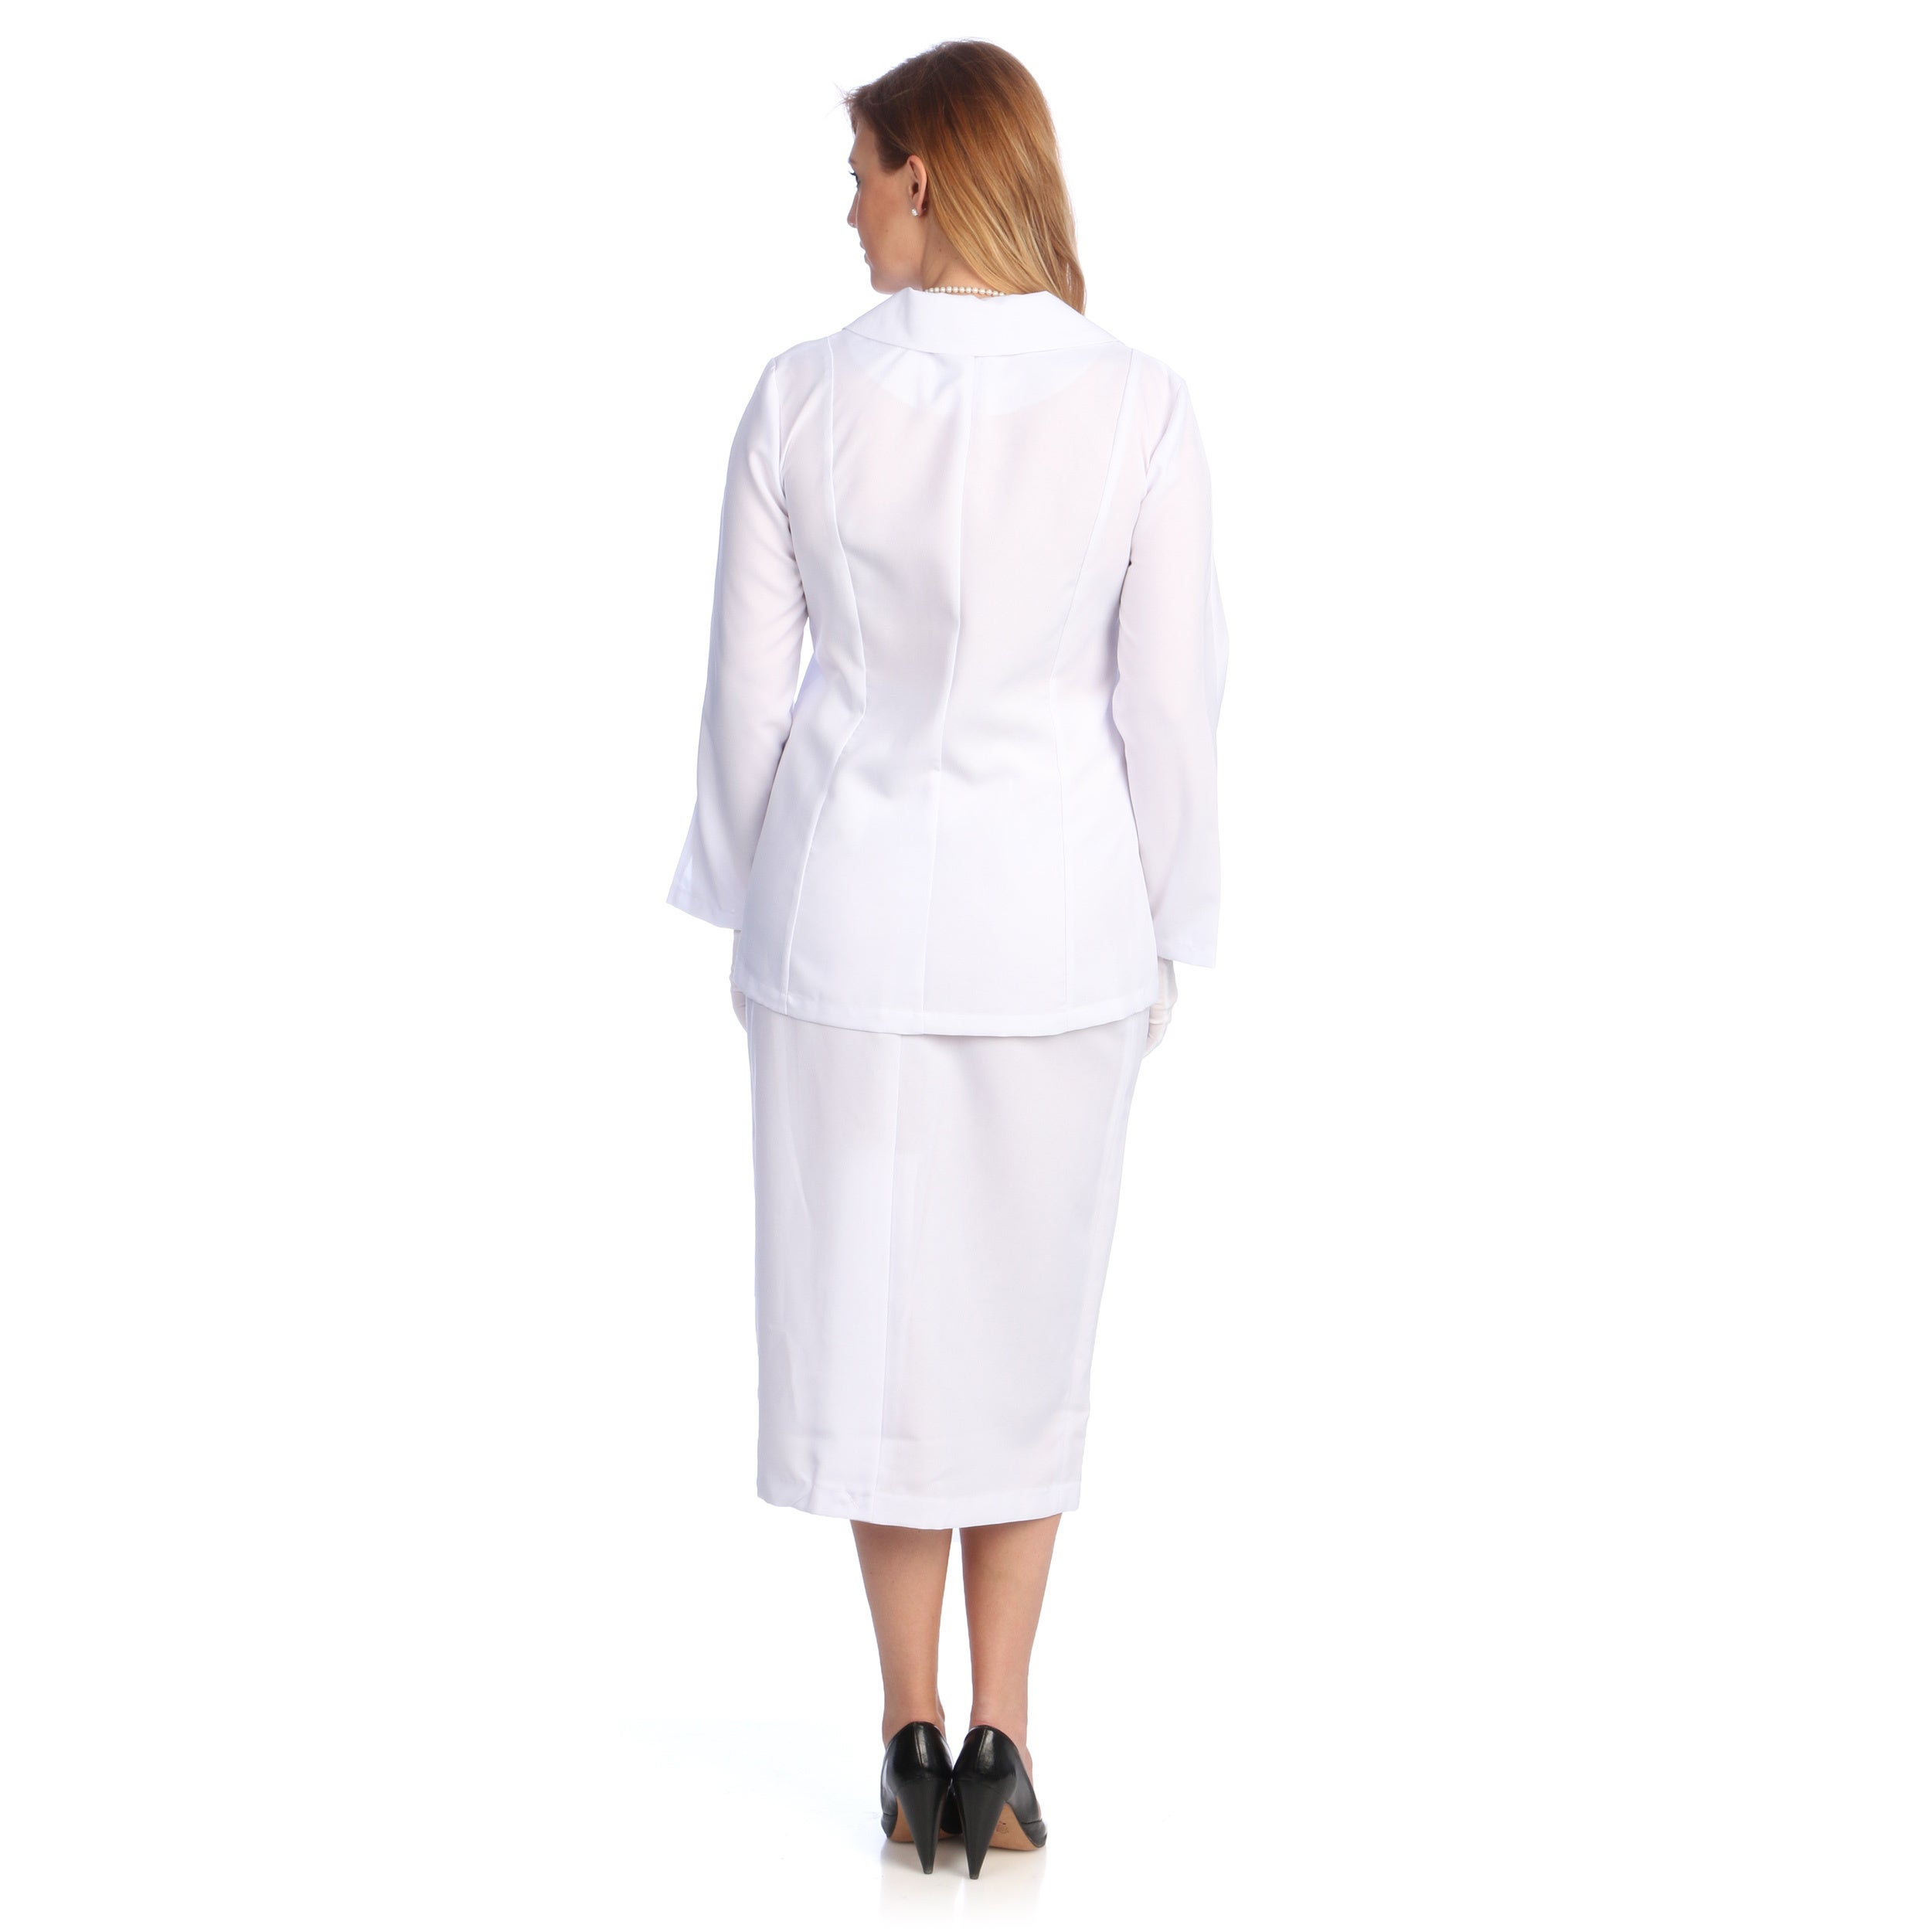 71e39f56e9b Shop Divine Apparel Women s Plus Size Classic Fashion Skirt Suit - Free  Shipping Today - Overstock - 6199194